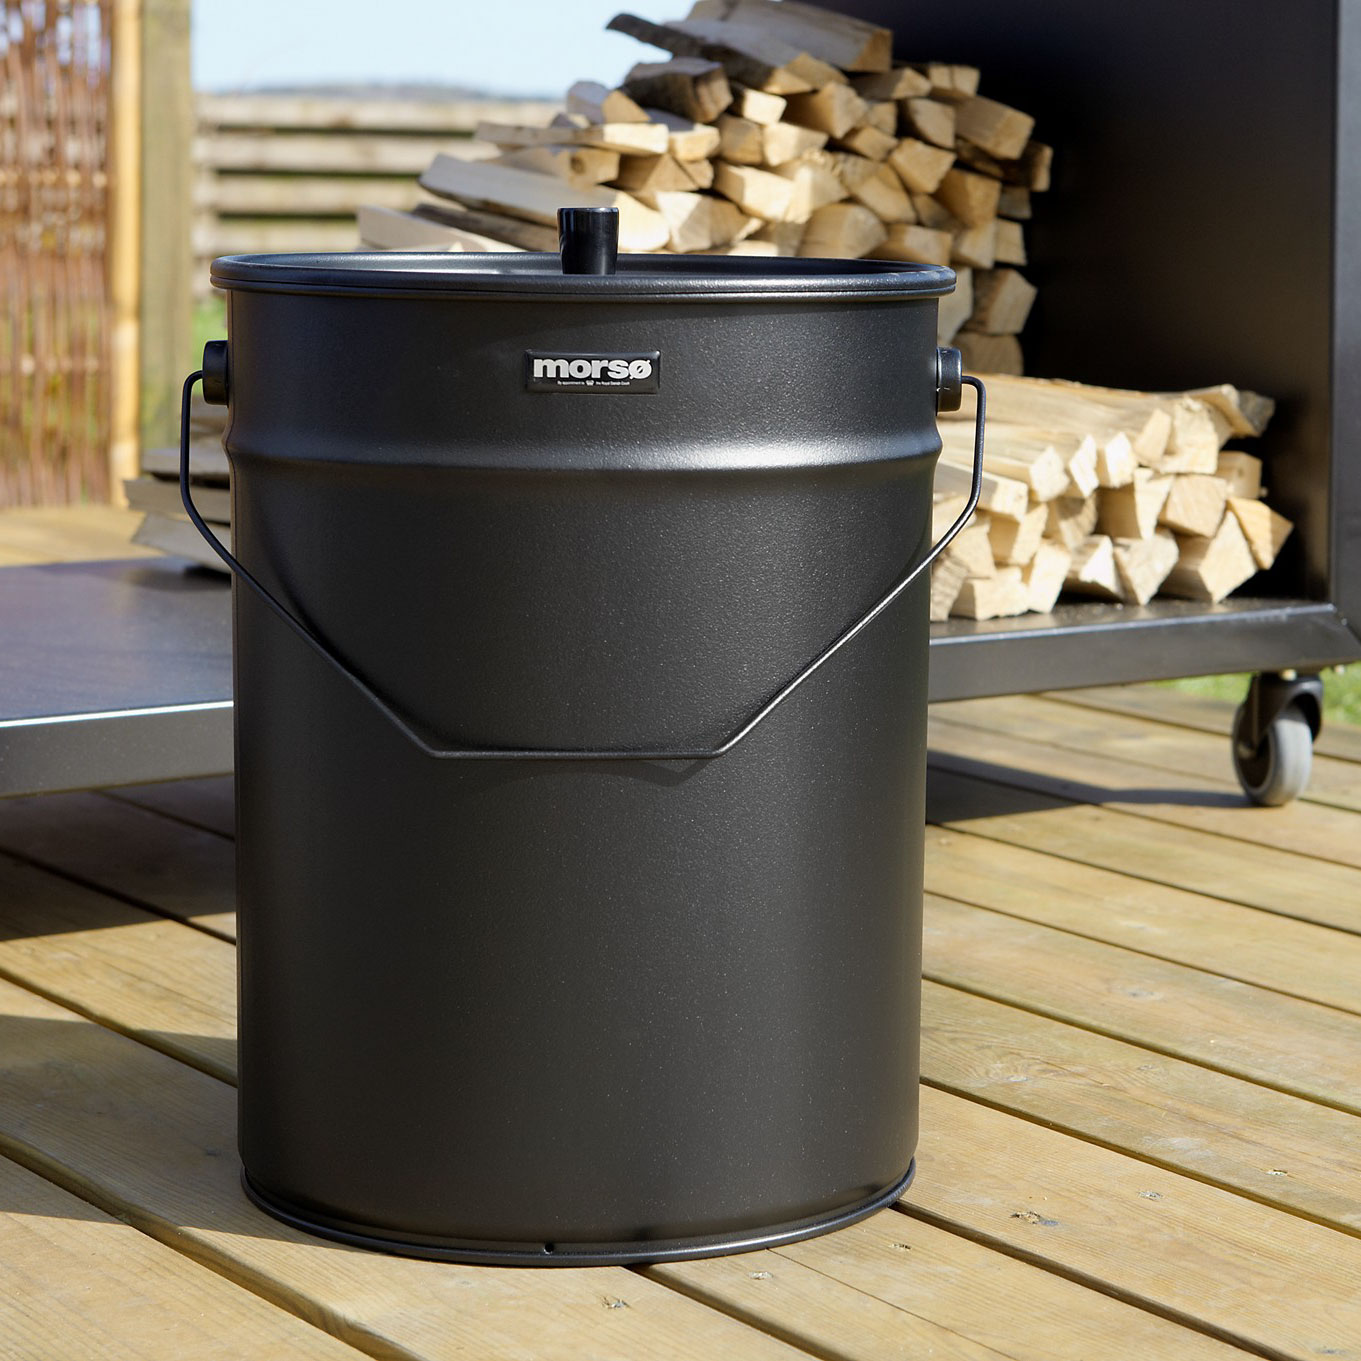 Morso ash and storage bucket in outdoor setting